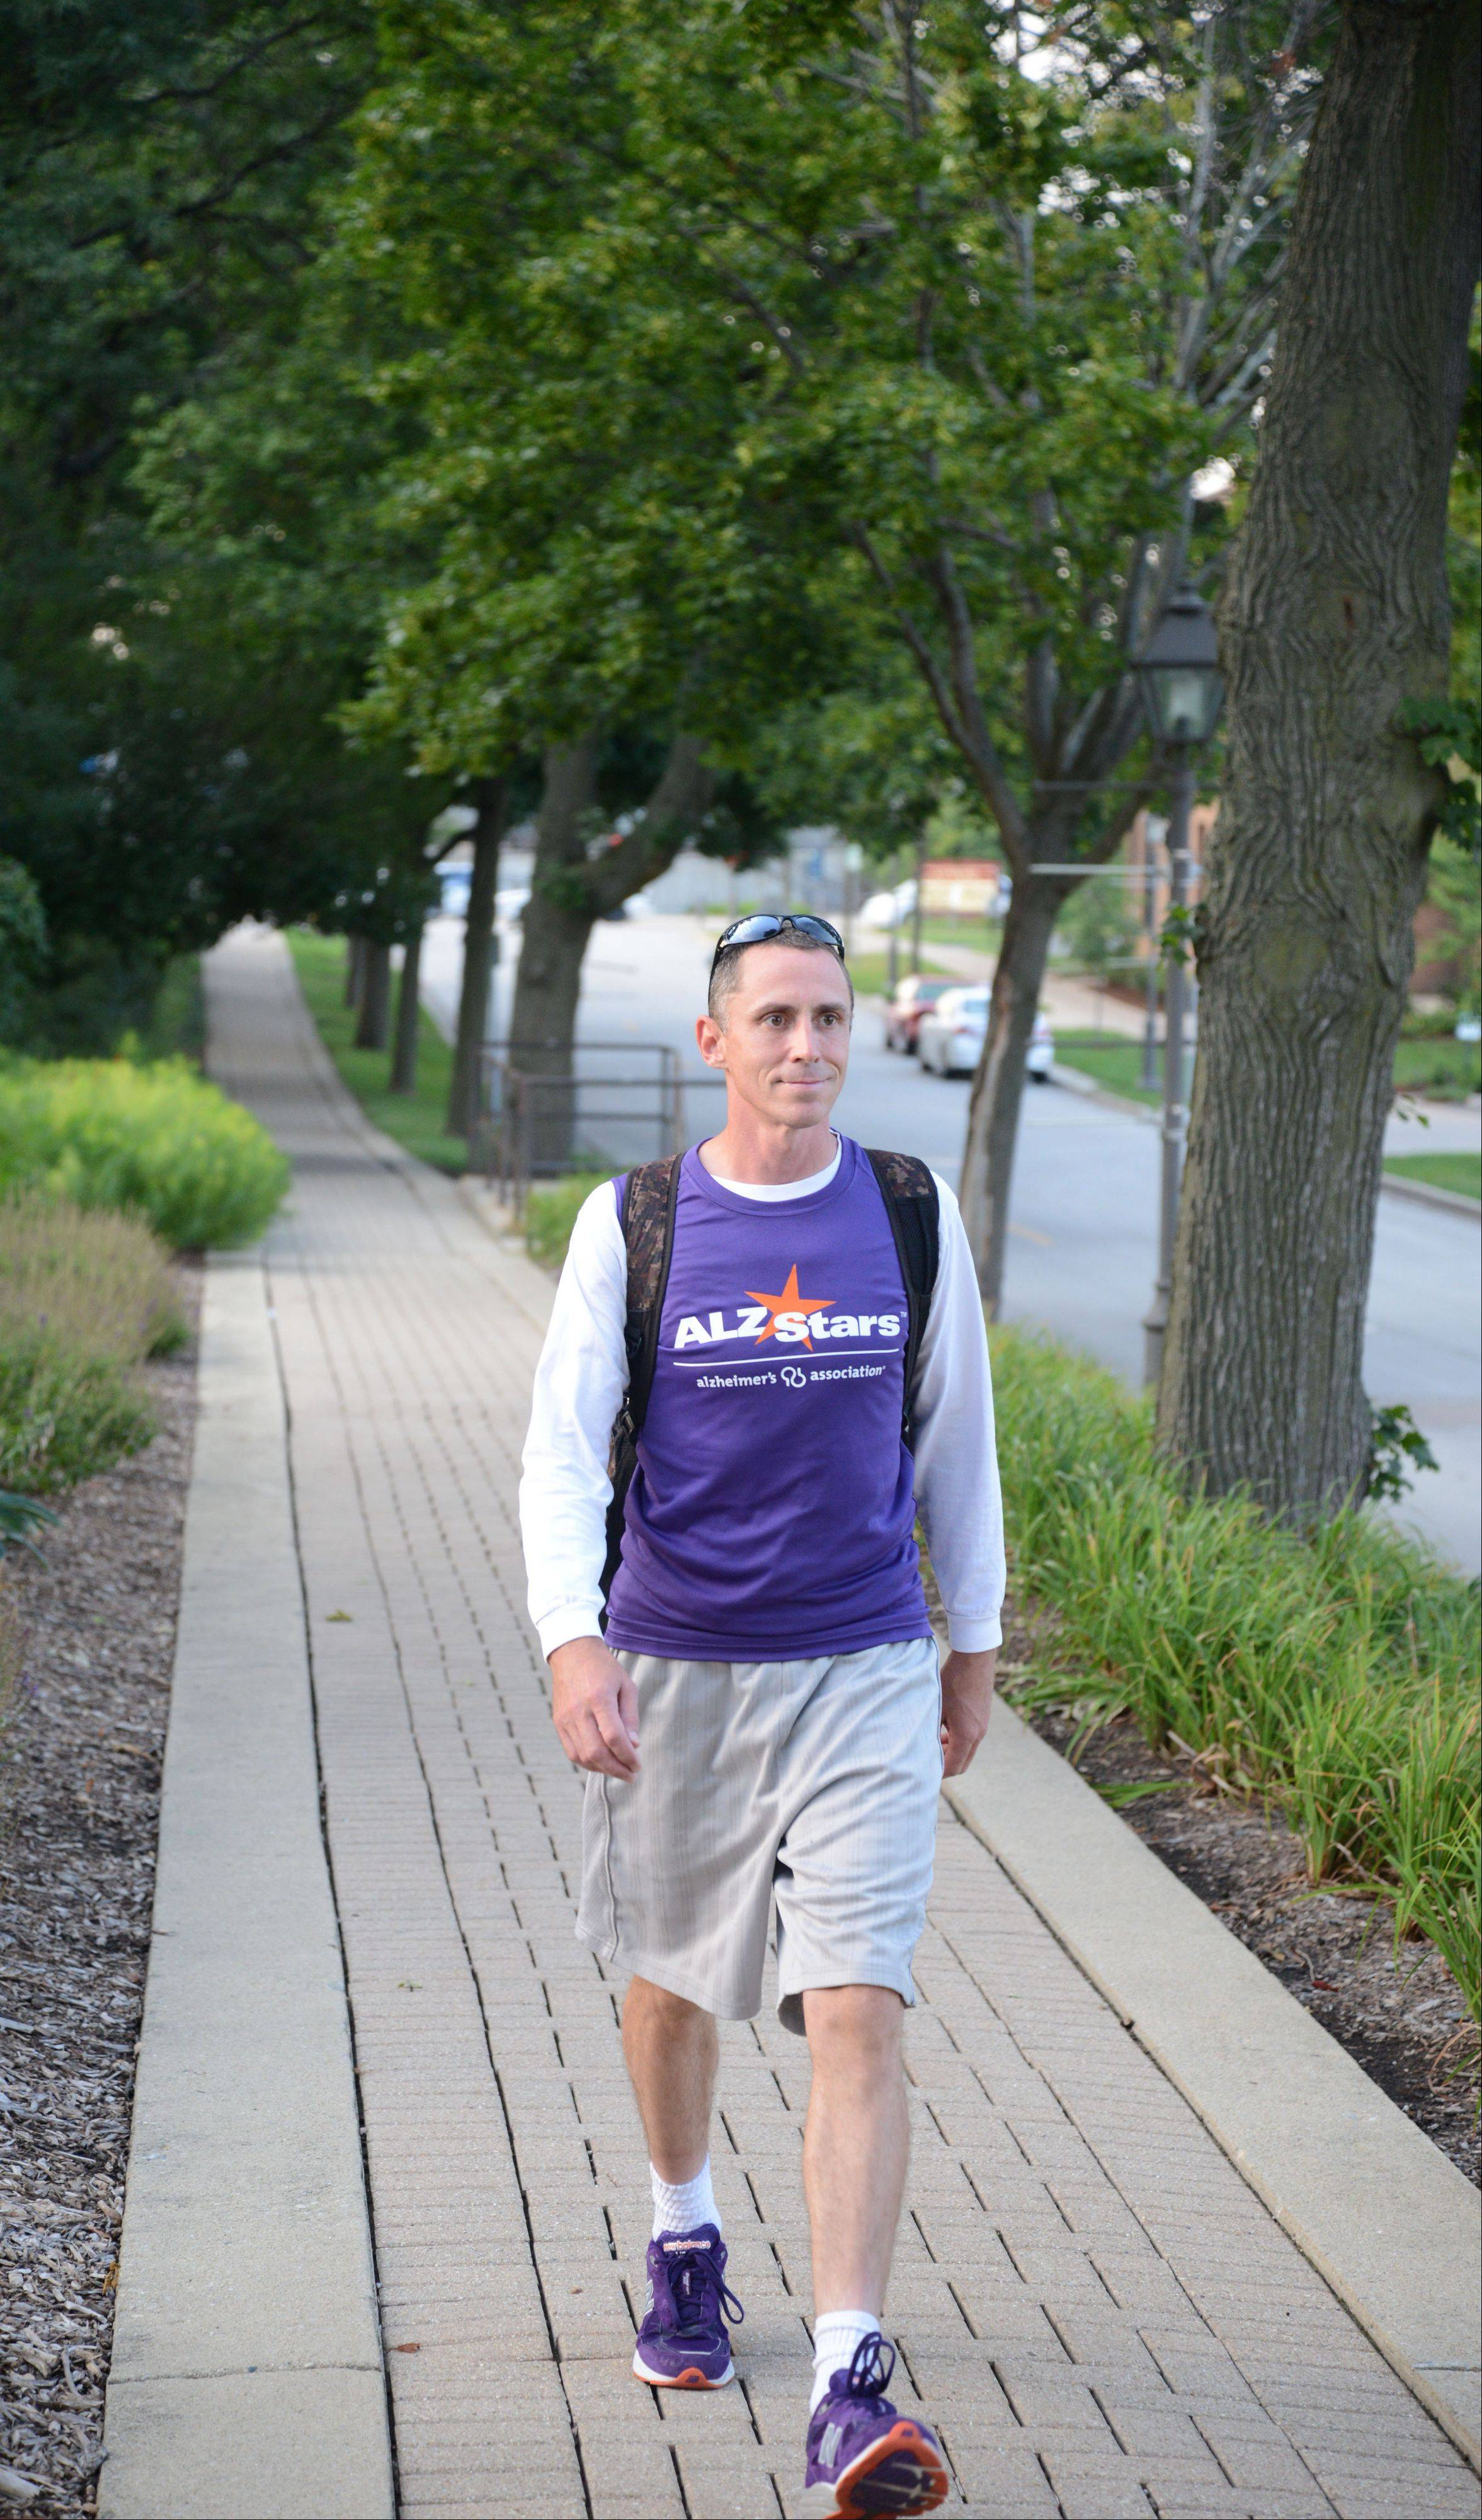 William Glass, of Lombard, will begin a 750-mile journey, alone and on foot, heading to Atlanta, in a fundraising and awareness promotion effort for Alzheimer's disease, which has afflicted his mother since 2010. He's calling the journey the Flowers for Mom walk and he aims to raise $10,000 for Alzheimer's research and push the HOPE For Alzheimer's Act with legislators along the way.